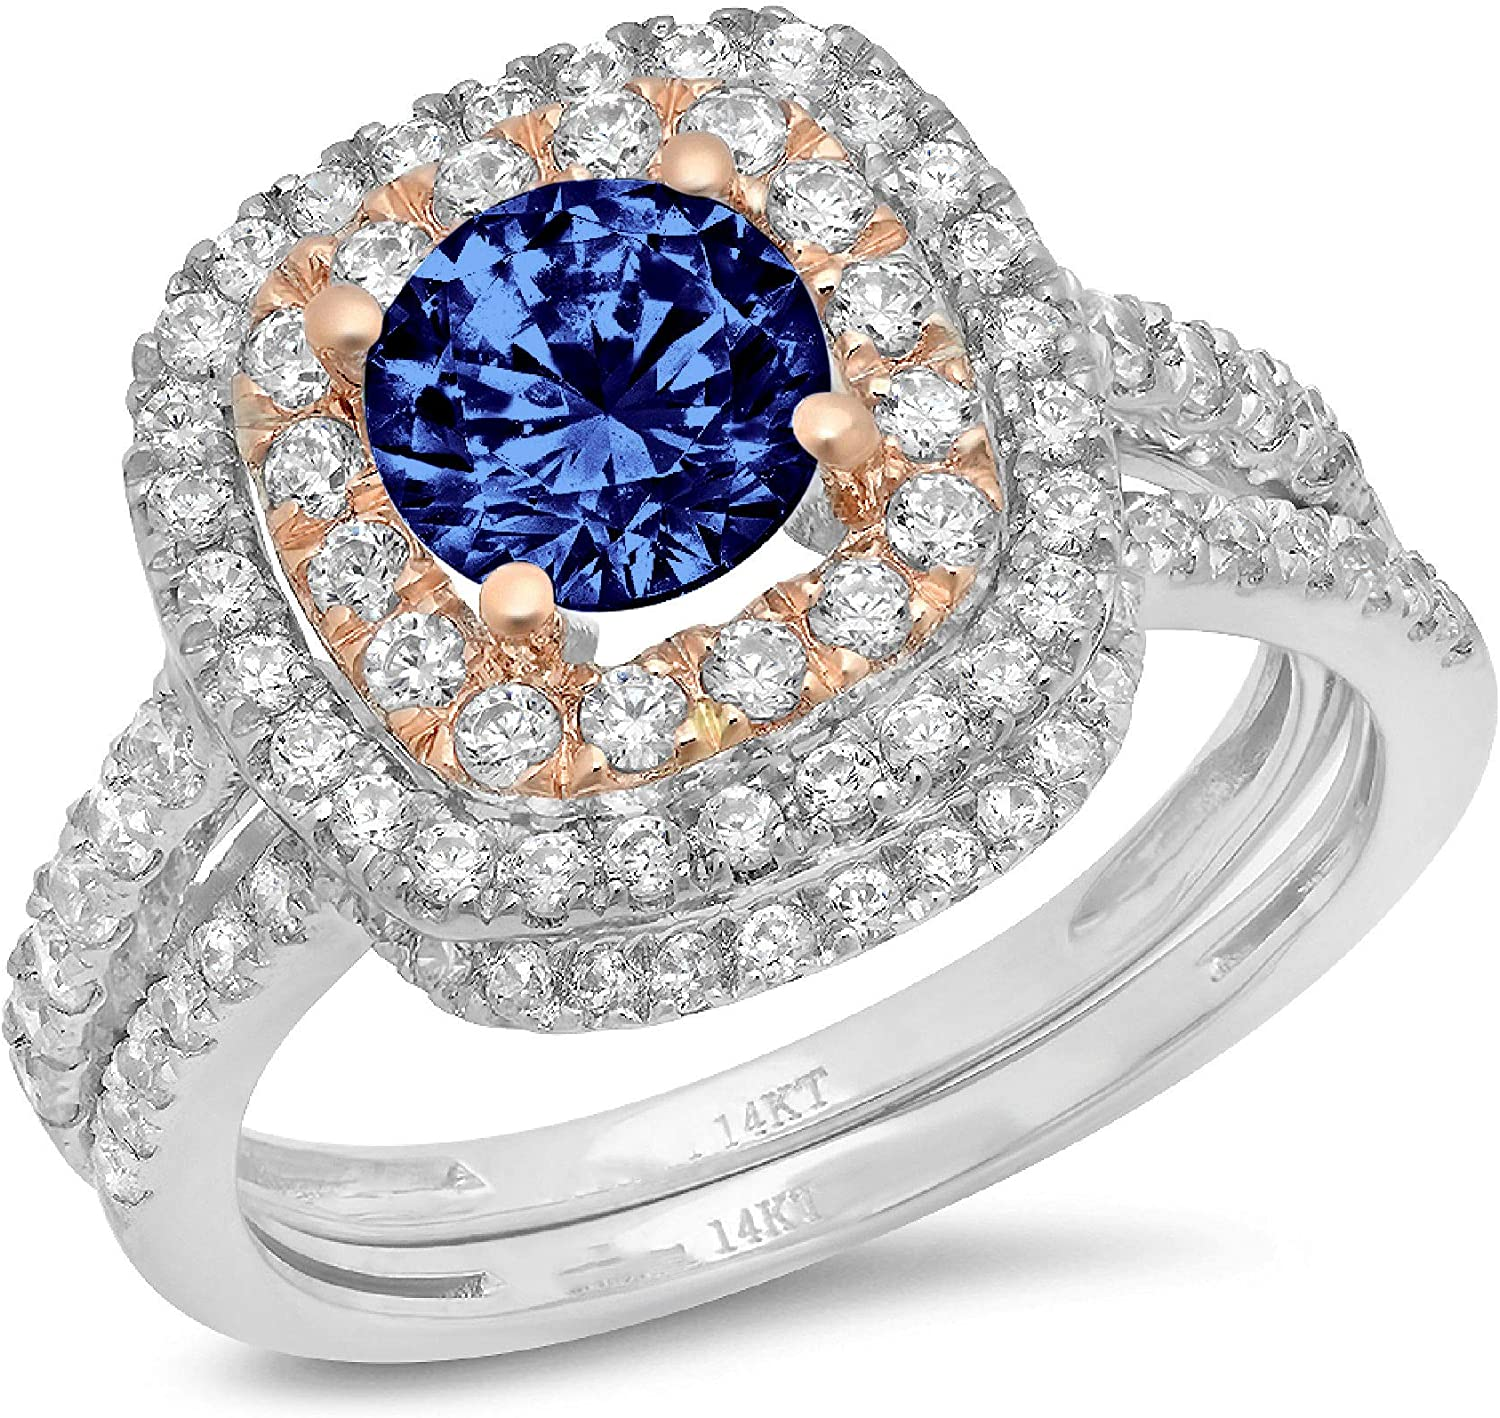 1.95 ct Round Sale special price Cut Halo Simula Accent Solitaire Max 82% OFF Genuine Pave